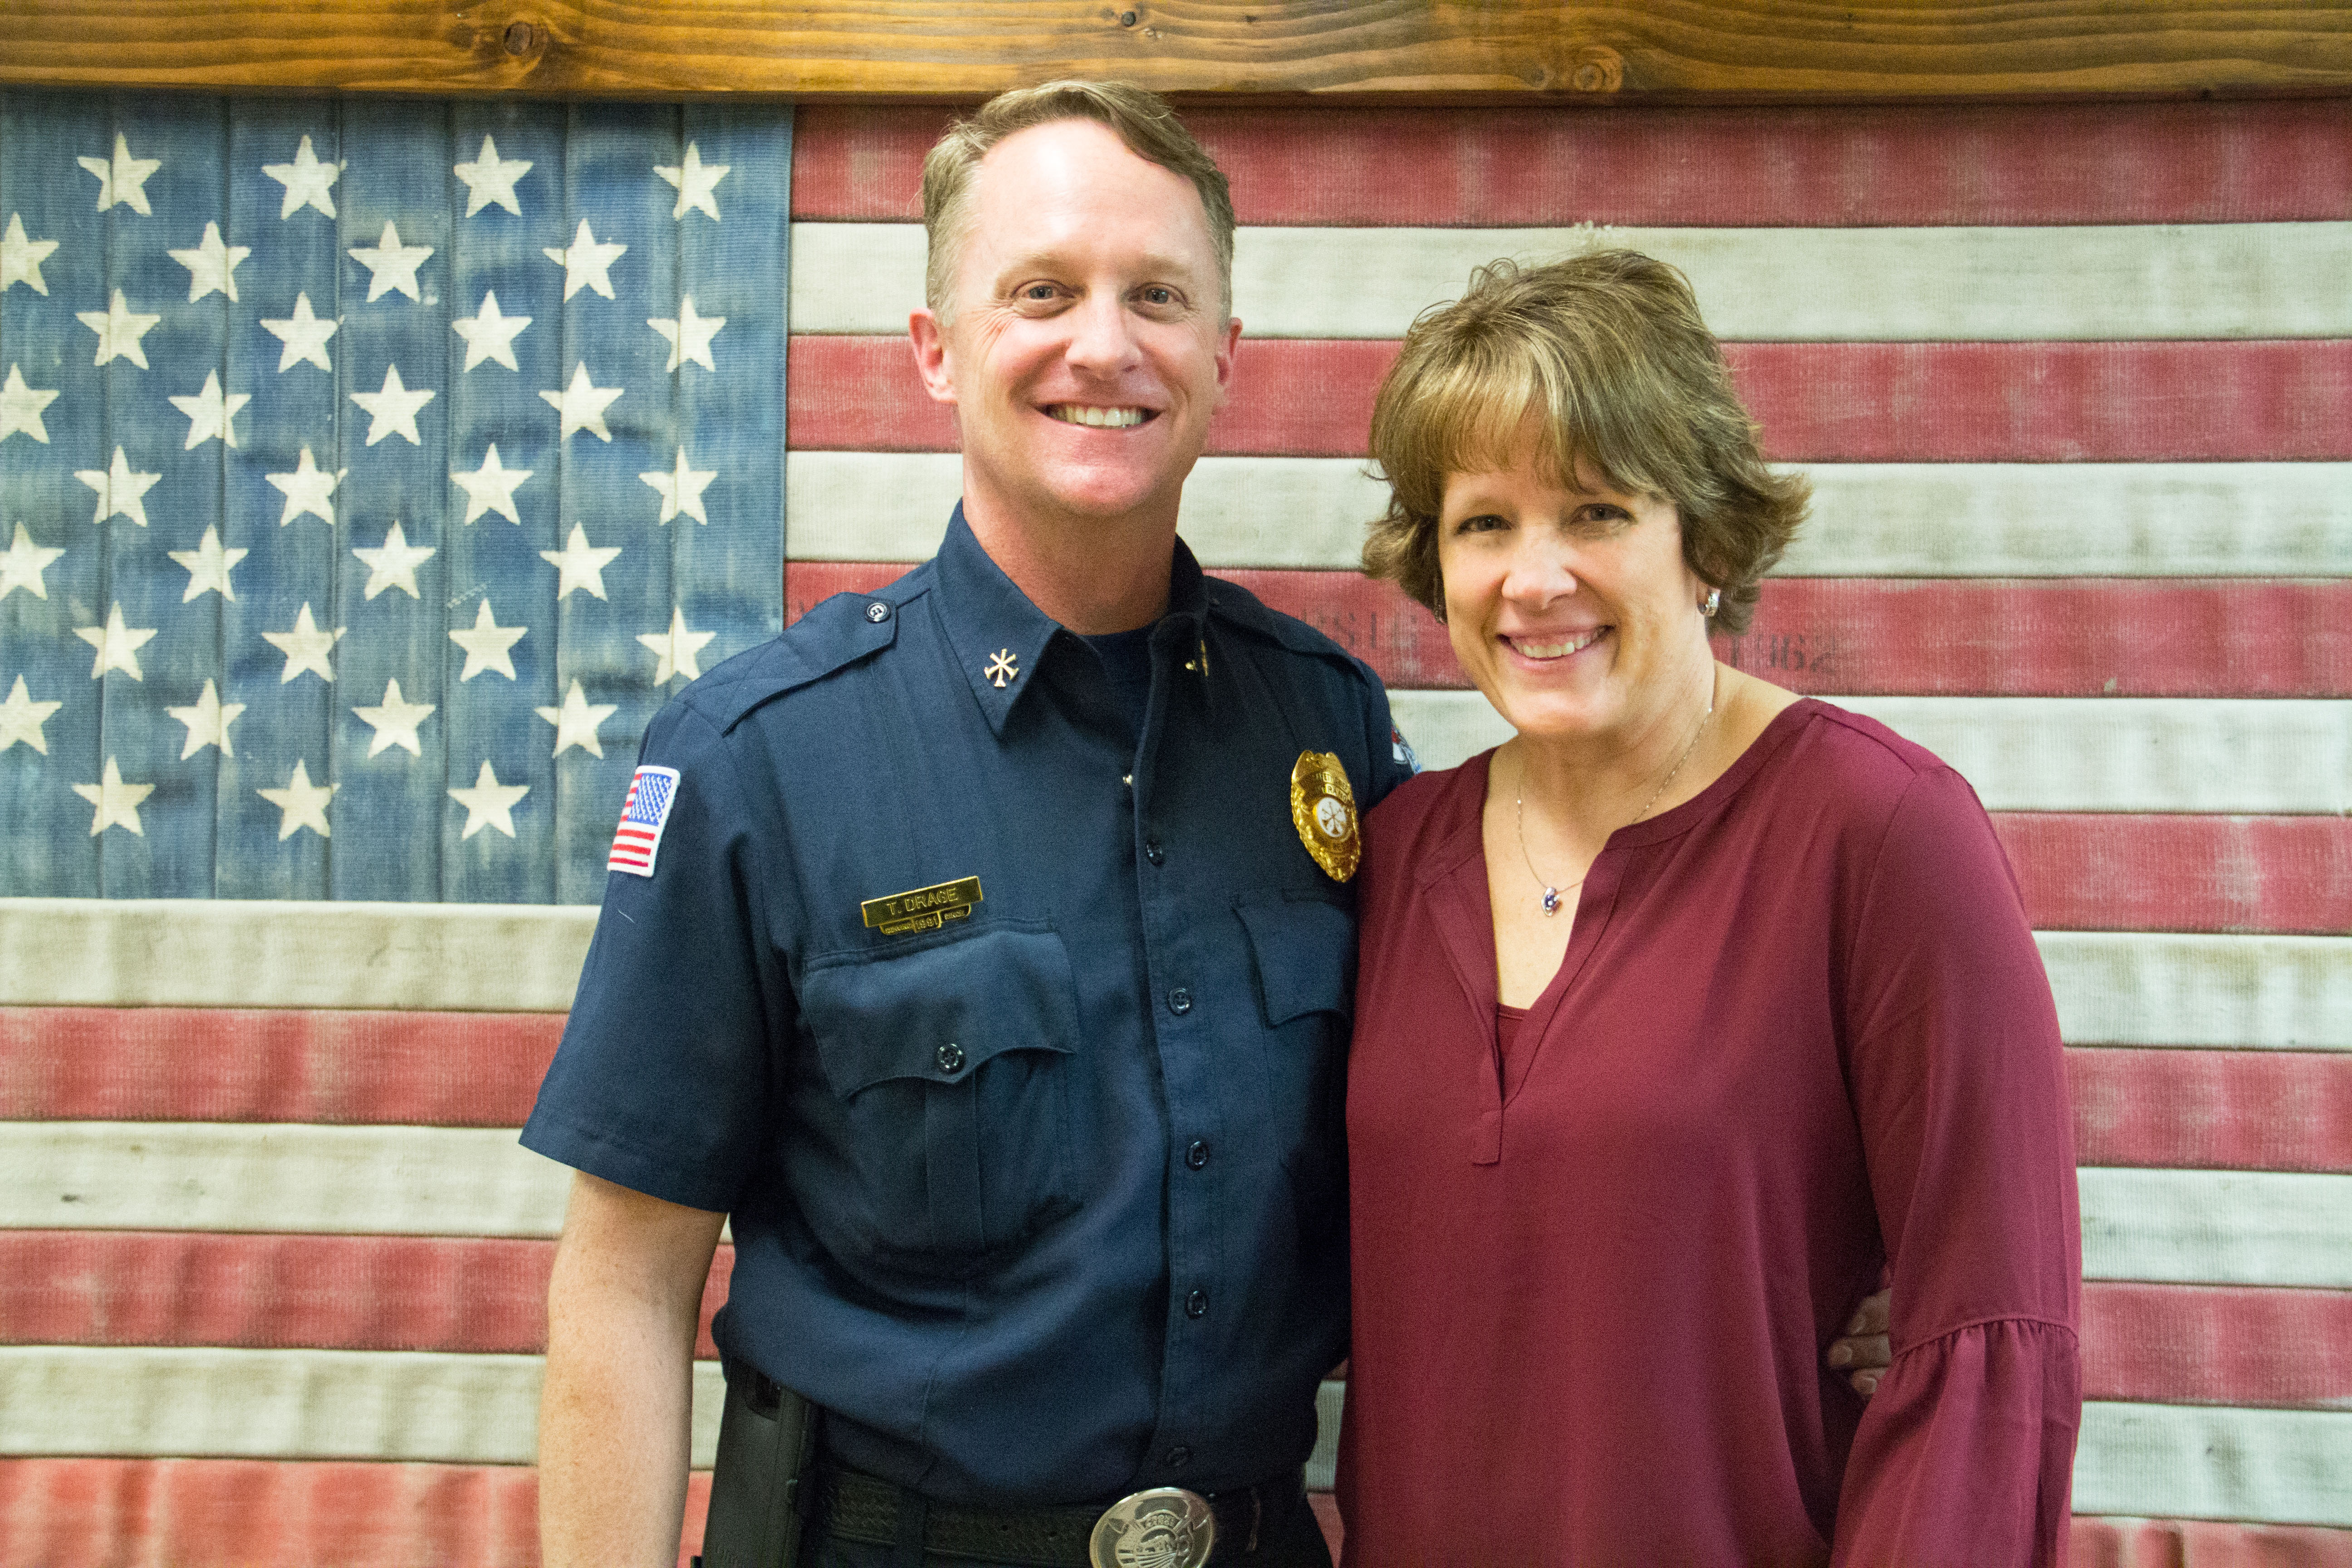 TYLER DRAGE APPOINTED LIFE SAFETY CHIEF/FIRE MARSHAL